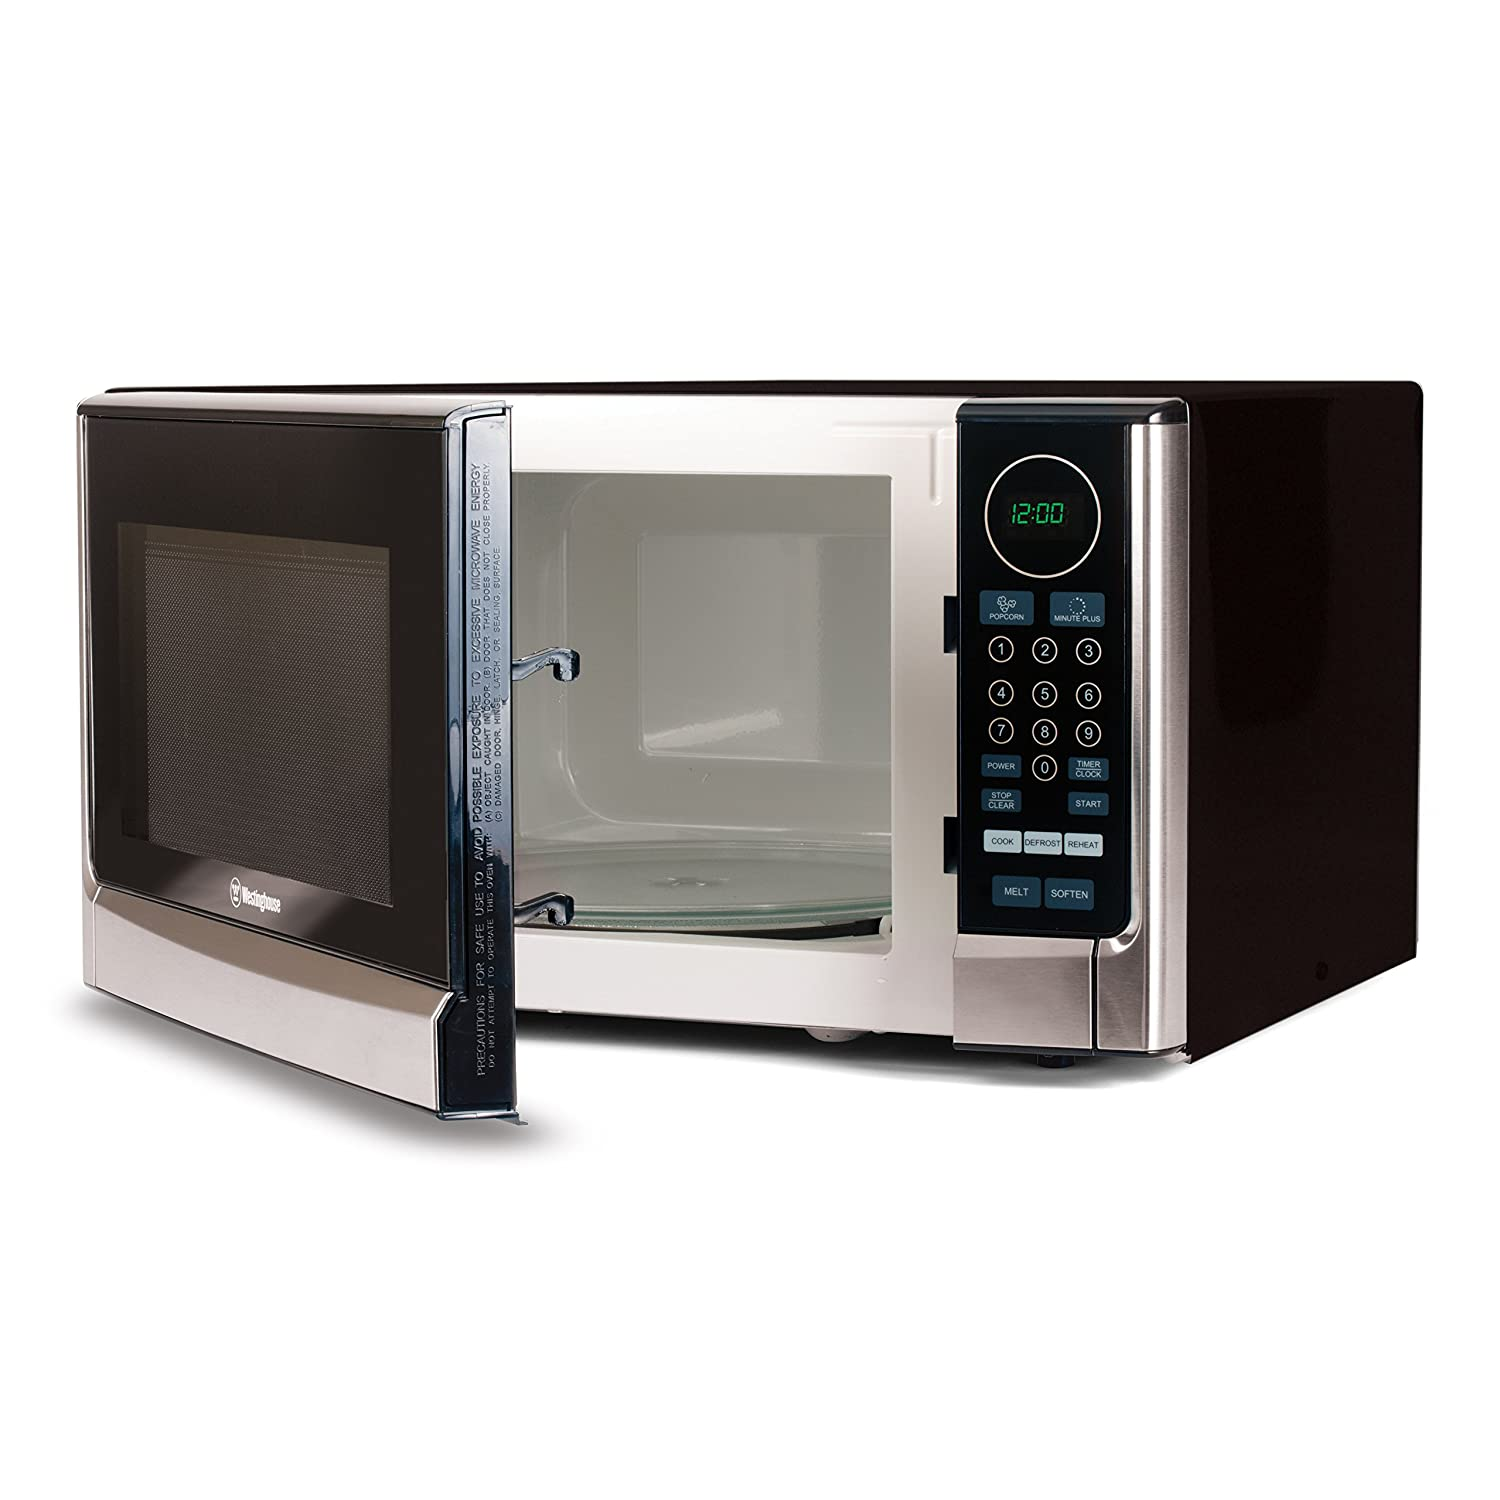 Westinghouse WCM14110SS 1100 Watt Counter Top Microwave Oven, 1 4 Cubic  Feet, Stainless Steel Front, Black Cabinet